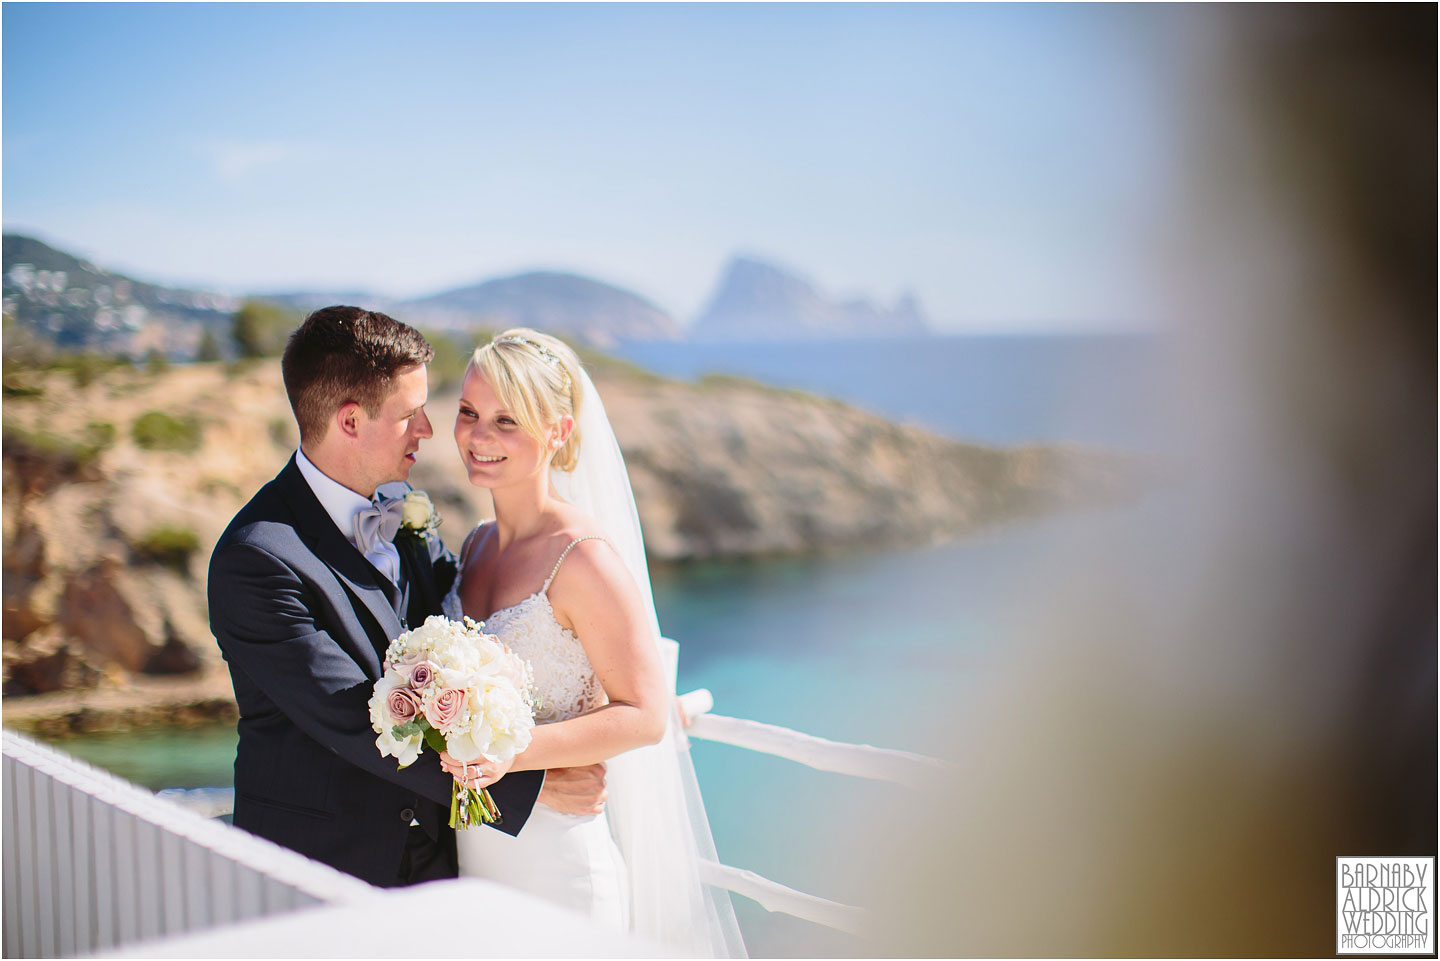 Destination Wedding Photography, Elixir Resort in Ibiza